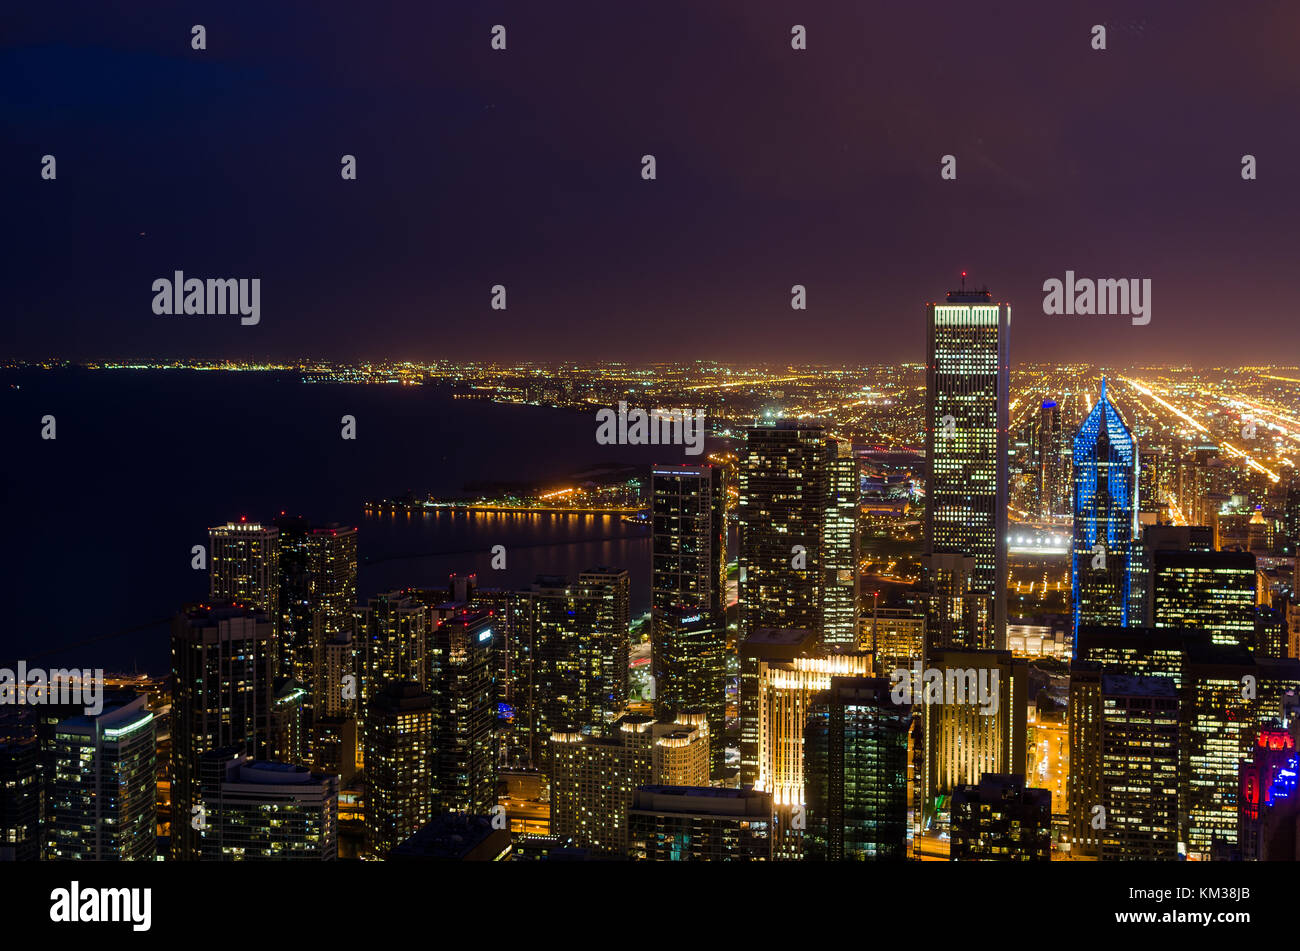 Night view of chicago skyline from willis tower - Stock Image